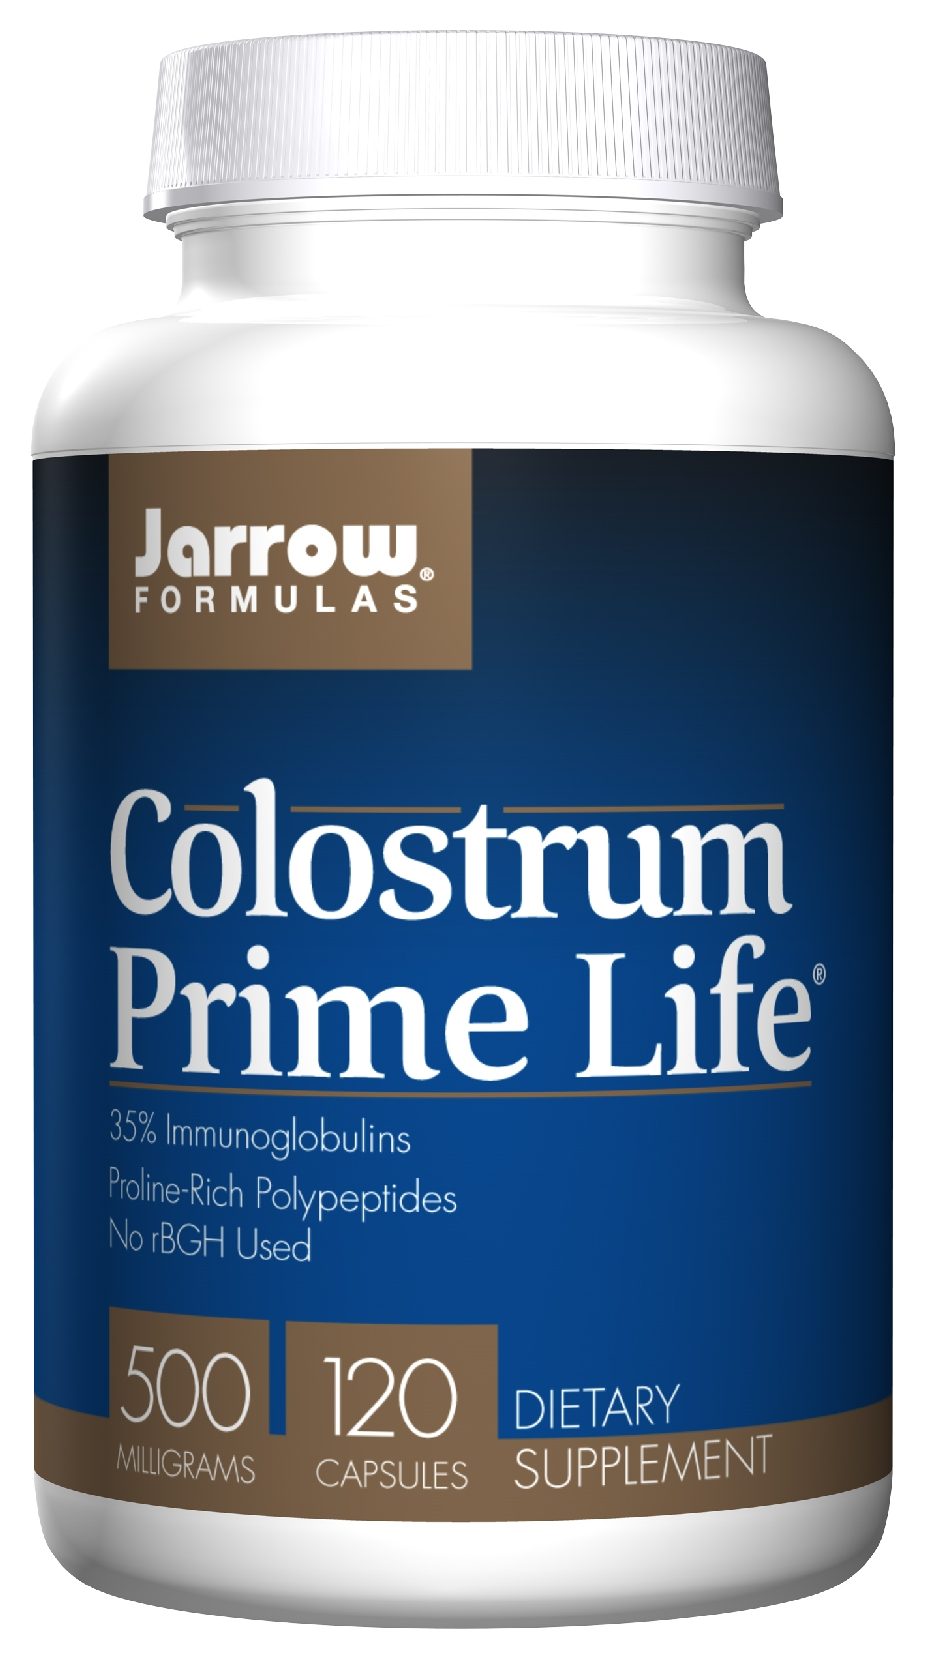 Colostrum Prime Life 500 mg 120 caps by Jarrow Formulas